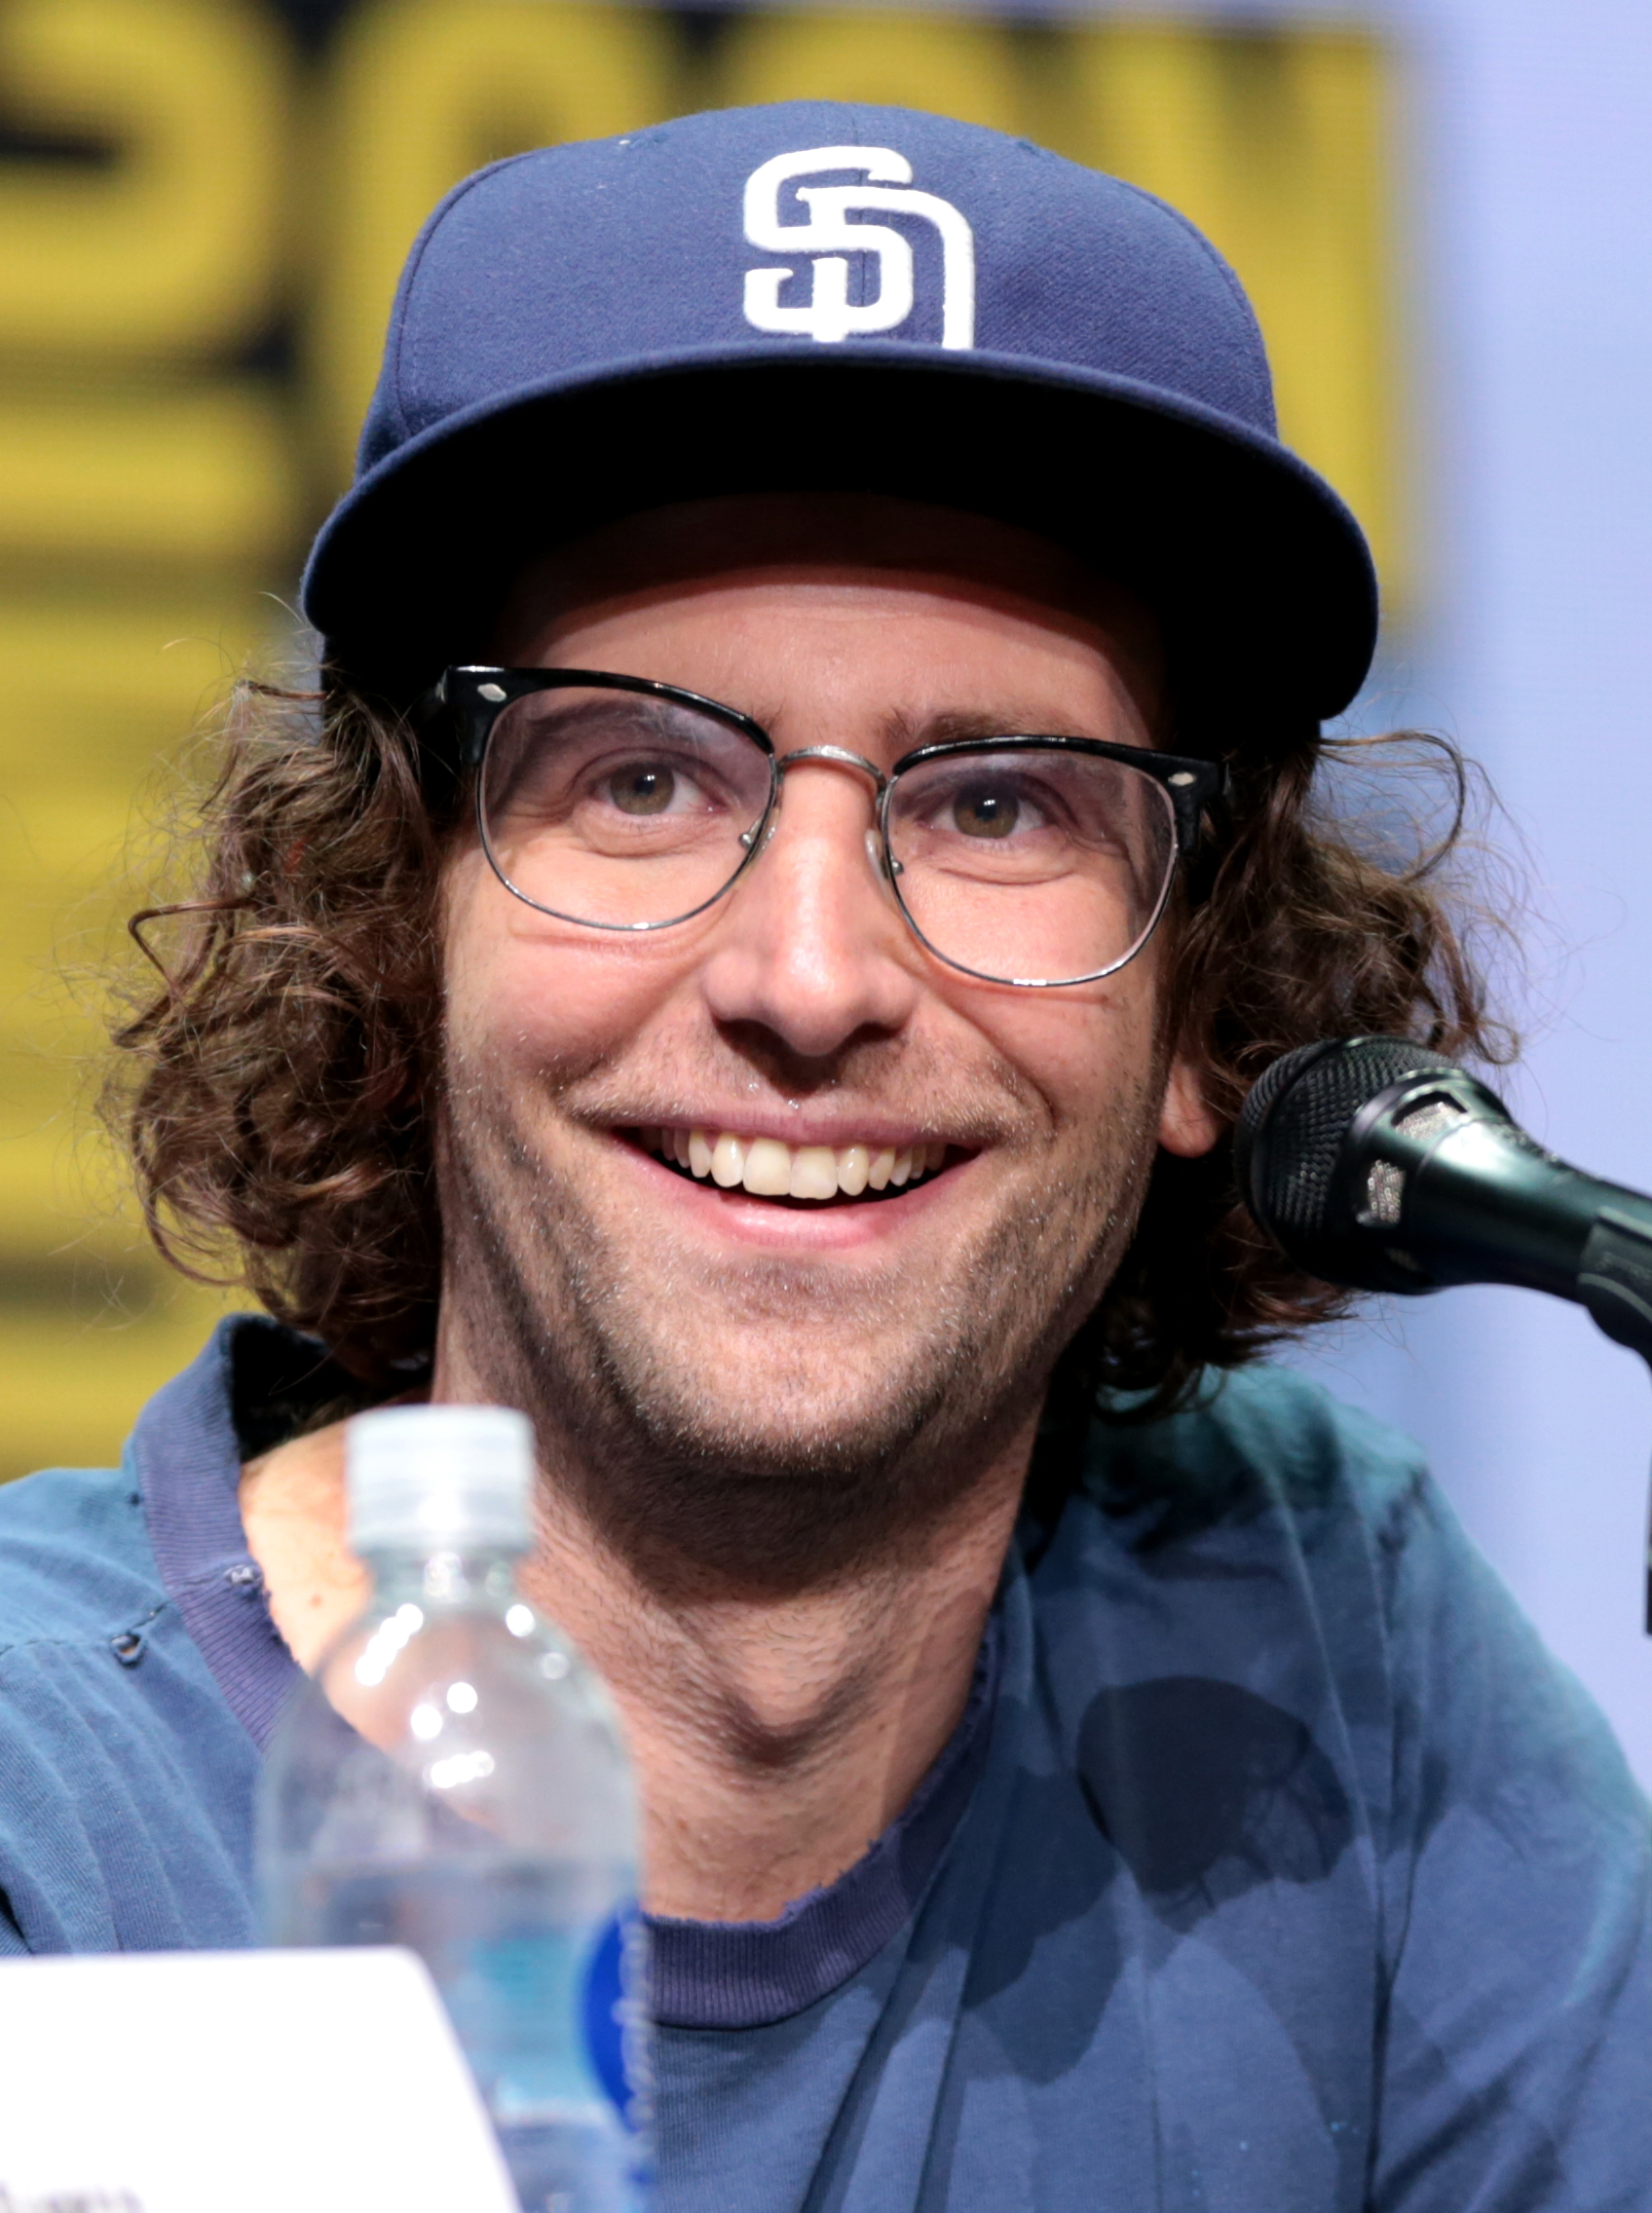 The 34-year old son of father Brian Mooney and mother Linda Kozub Kyle Mooney in 2019 photo. Kyle Mooney earned a  million dollar salary - leaving the net worth at 0.6 million in 2019